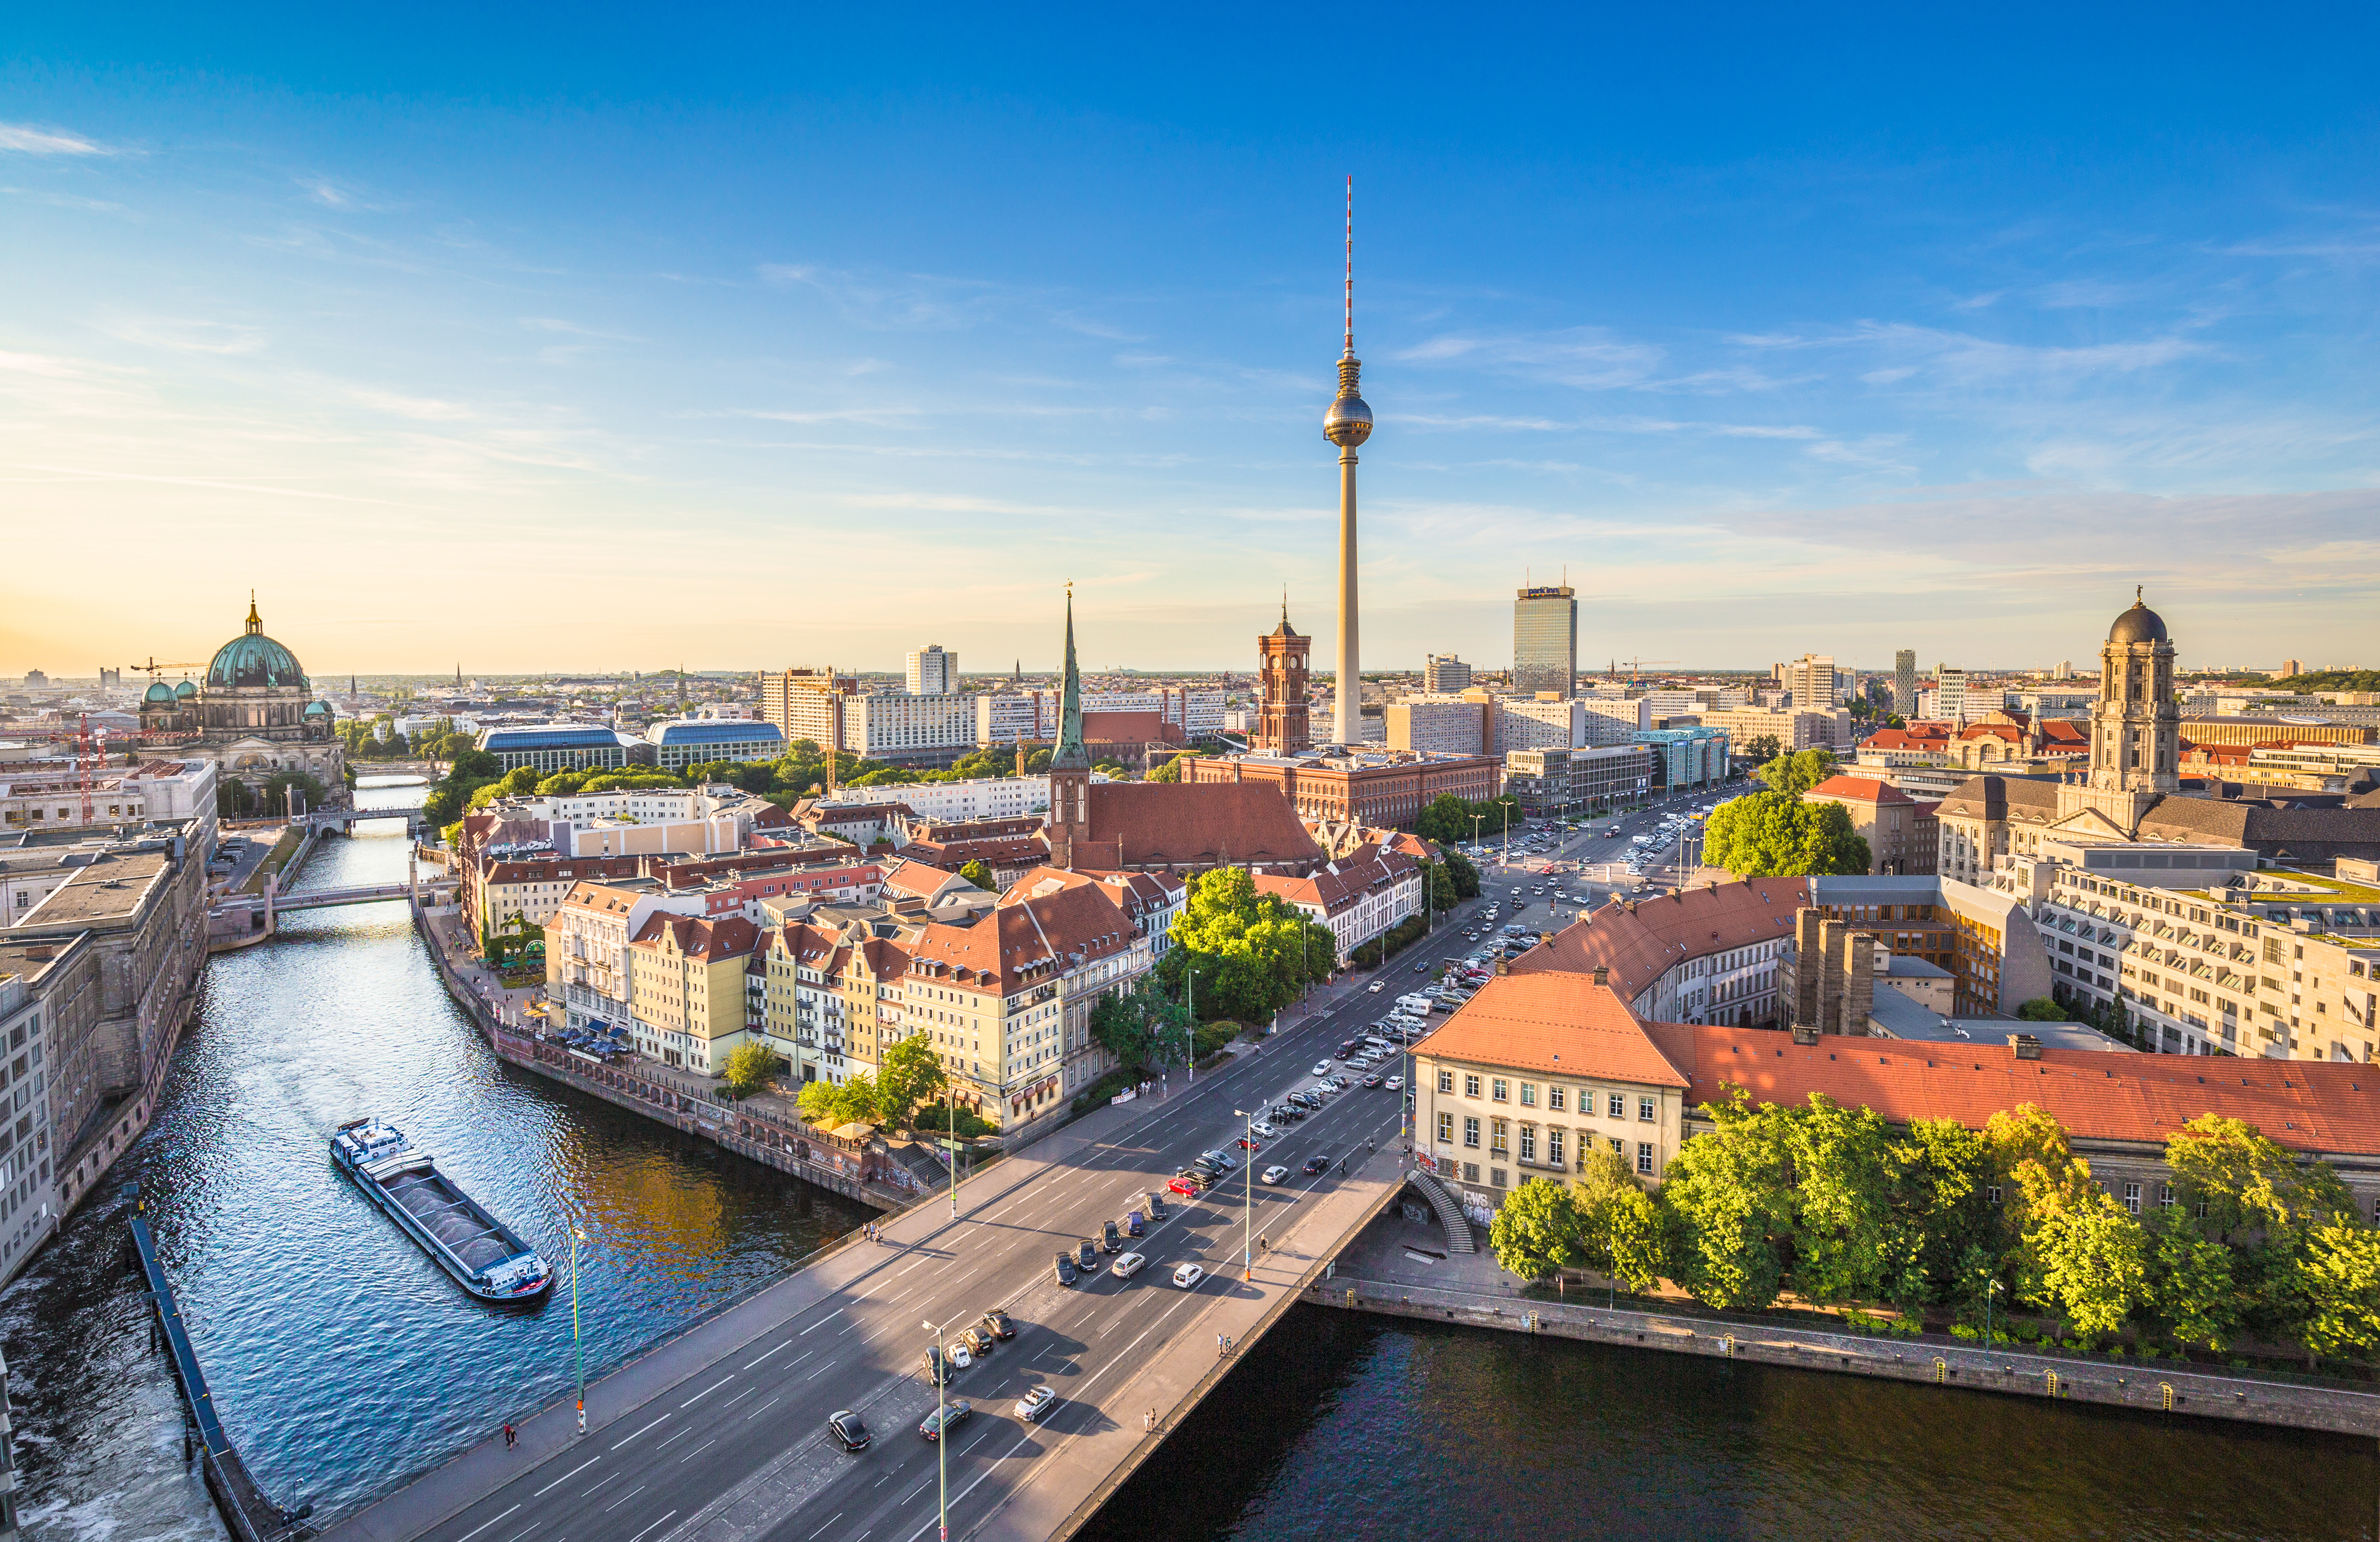 Wide-ranging new research partnership with Berlin universities